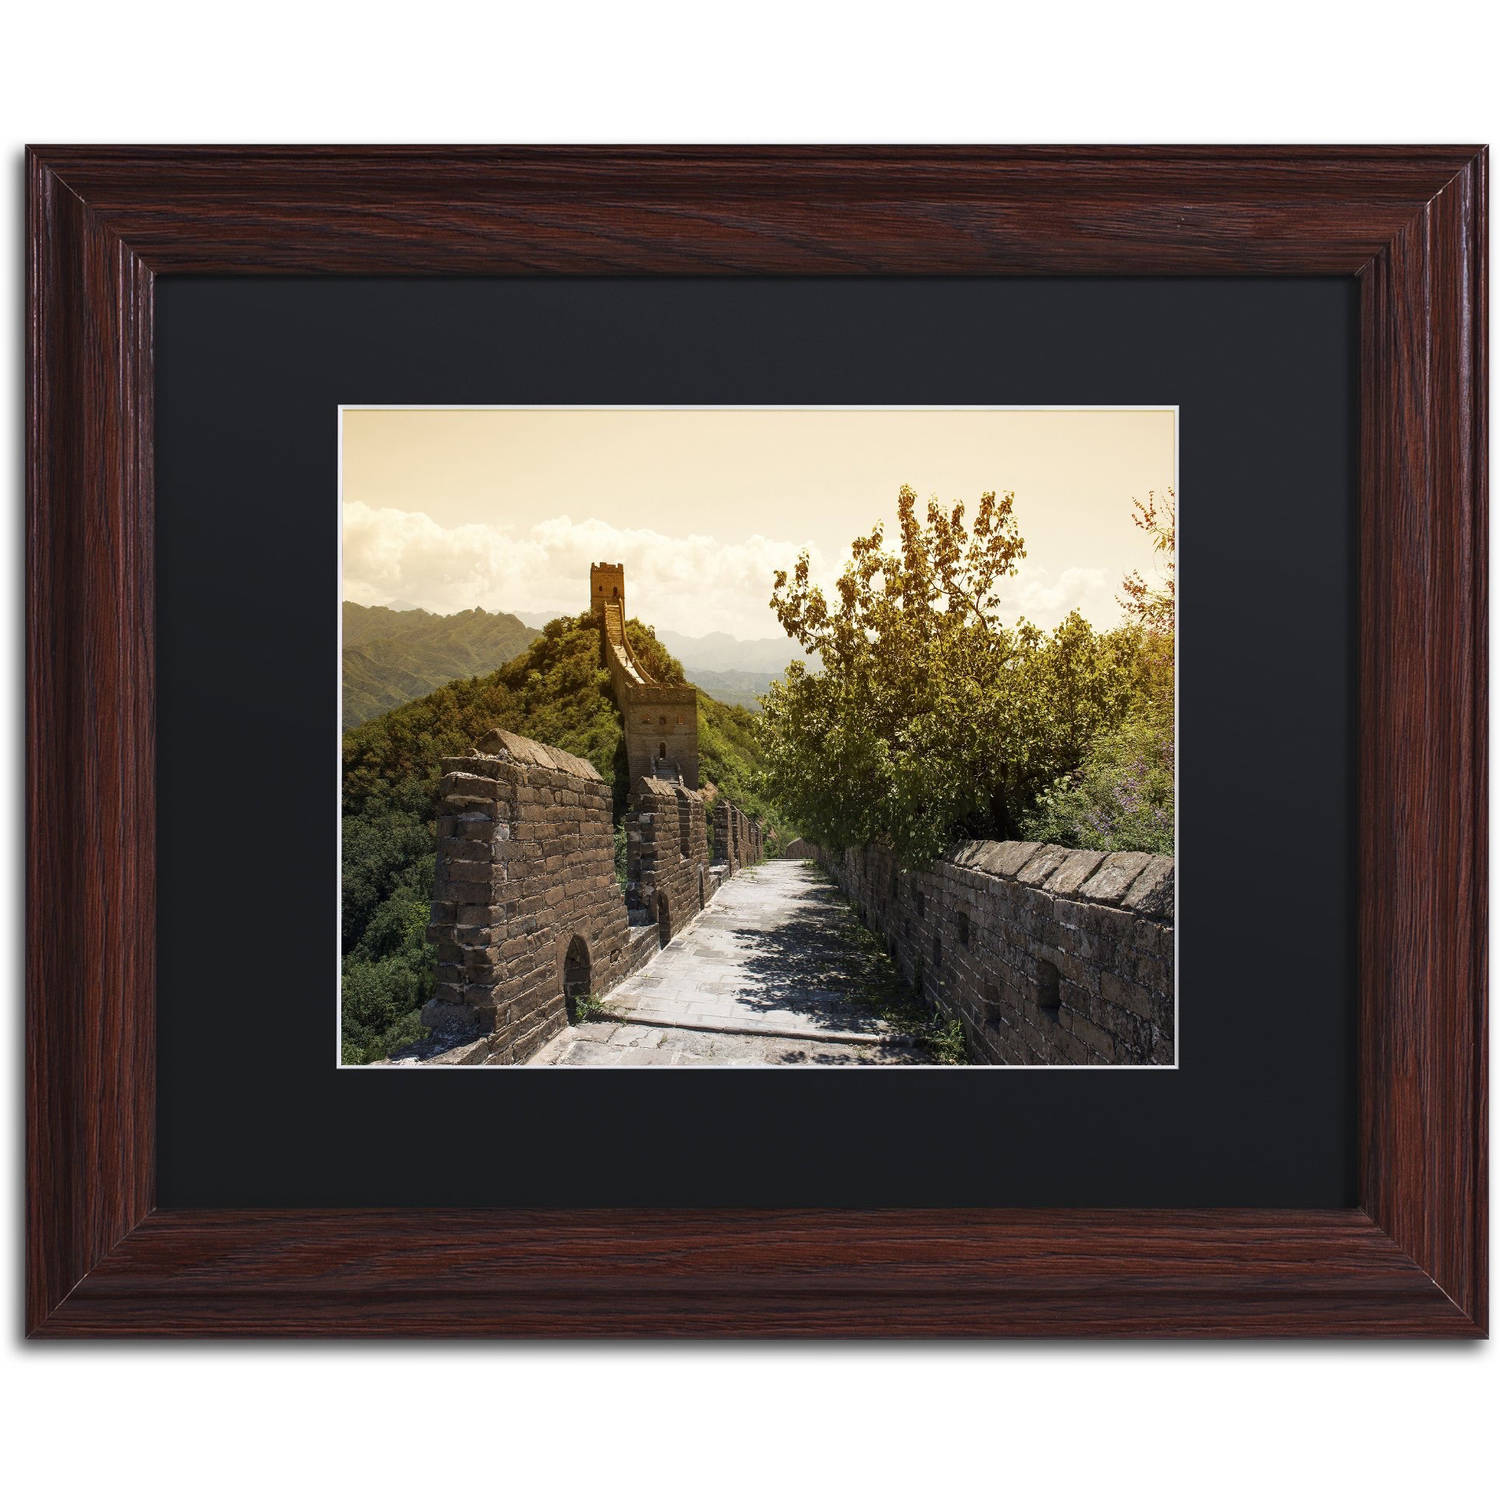 "Trademark Fine Art ""Great Wall III"" Canvas Art by Philippe Hugonnard, Black Matte, Wood Frame"